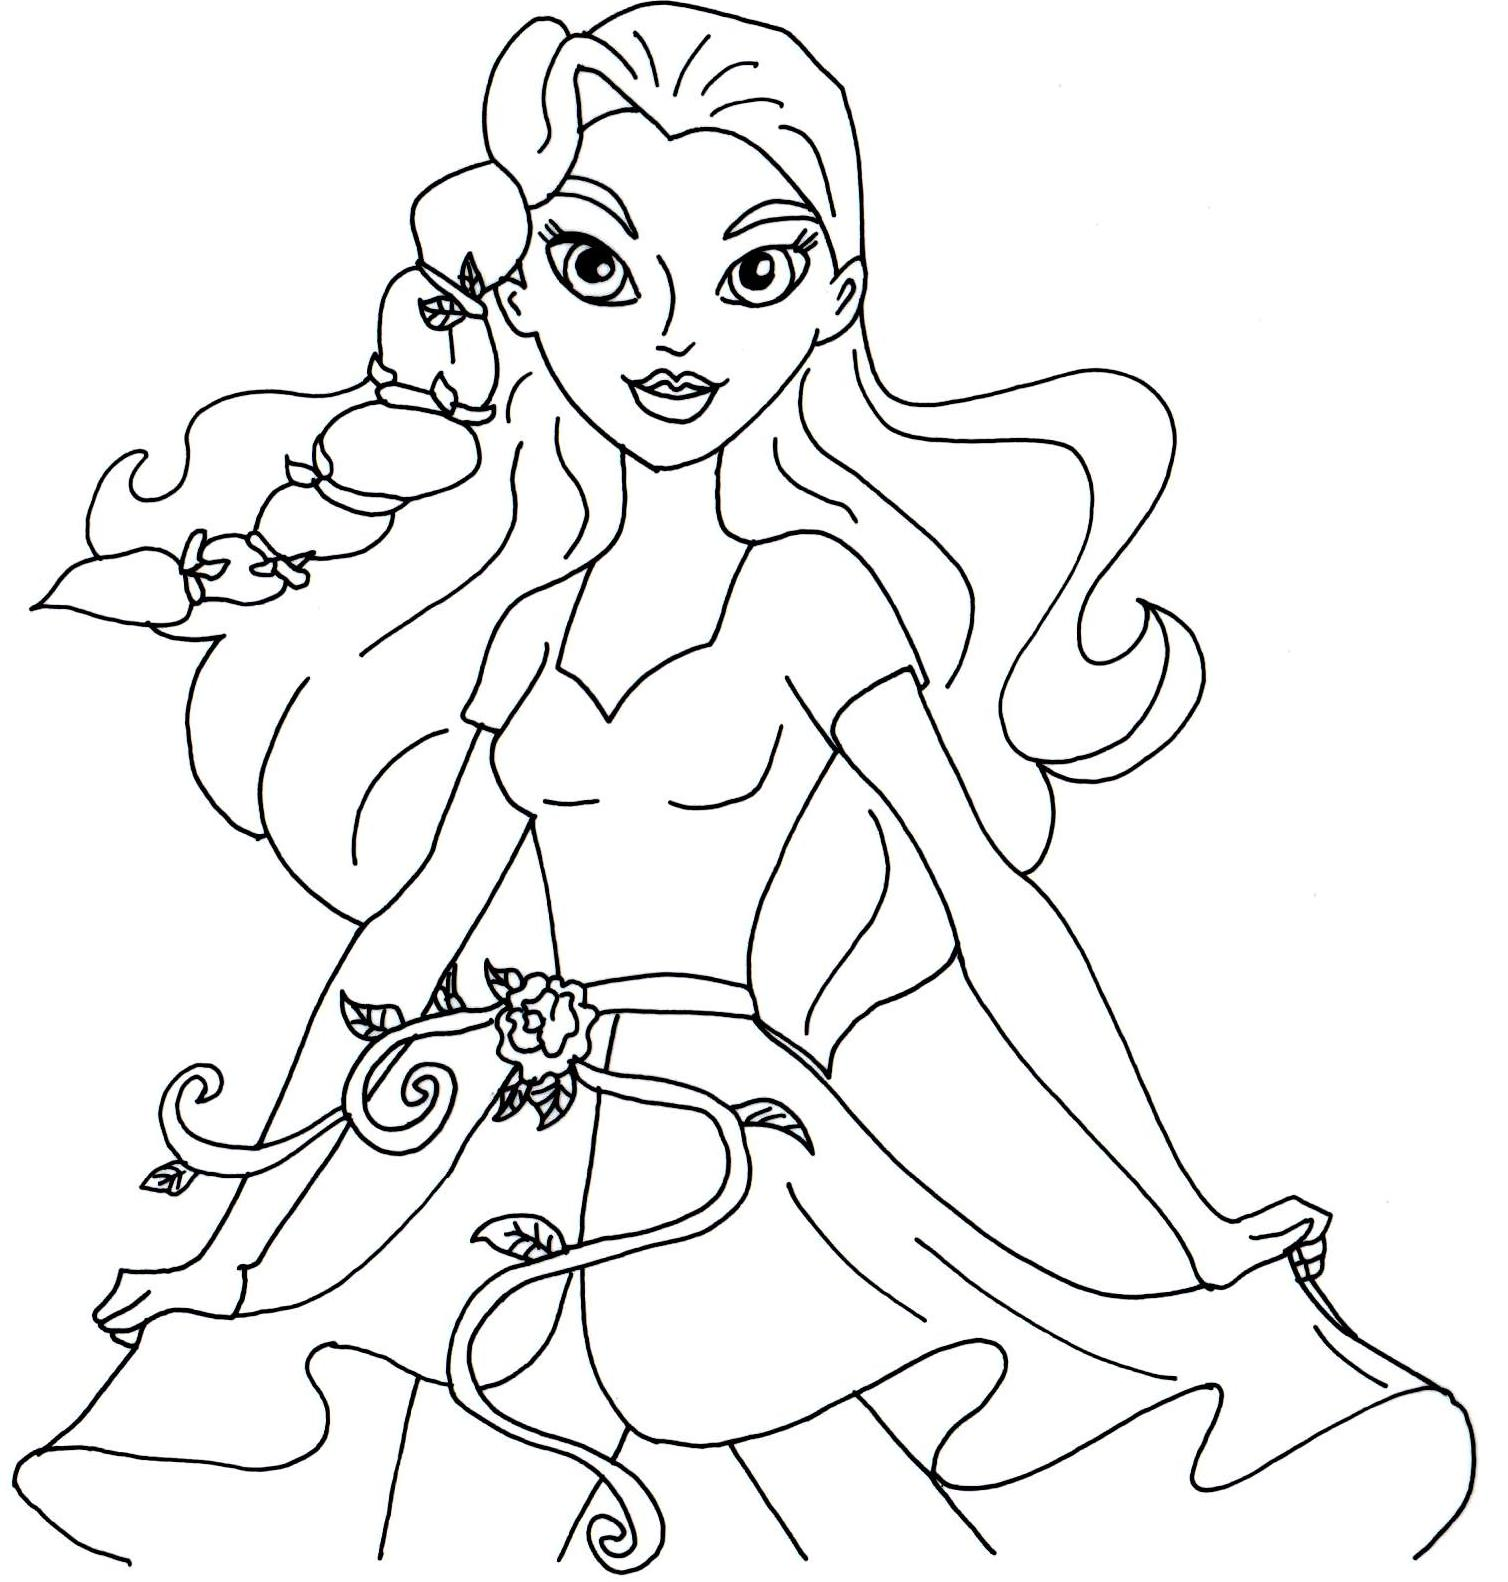 100 ideas Dc Superhero Coloring Pages on gerardduchemann